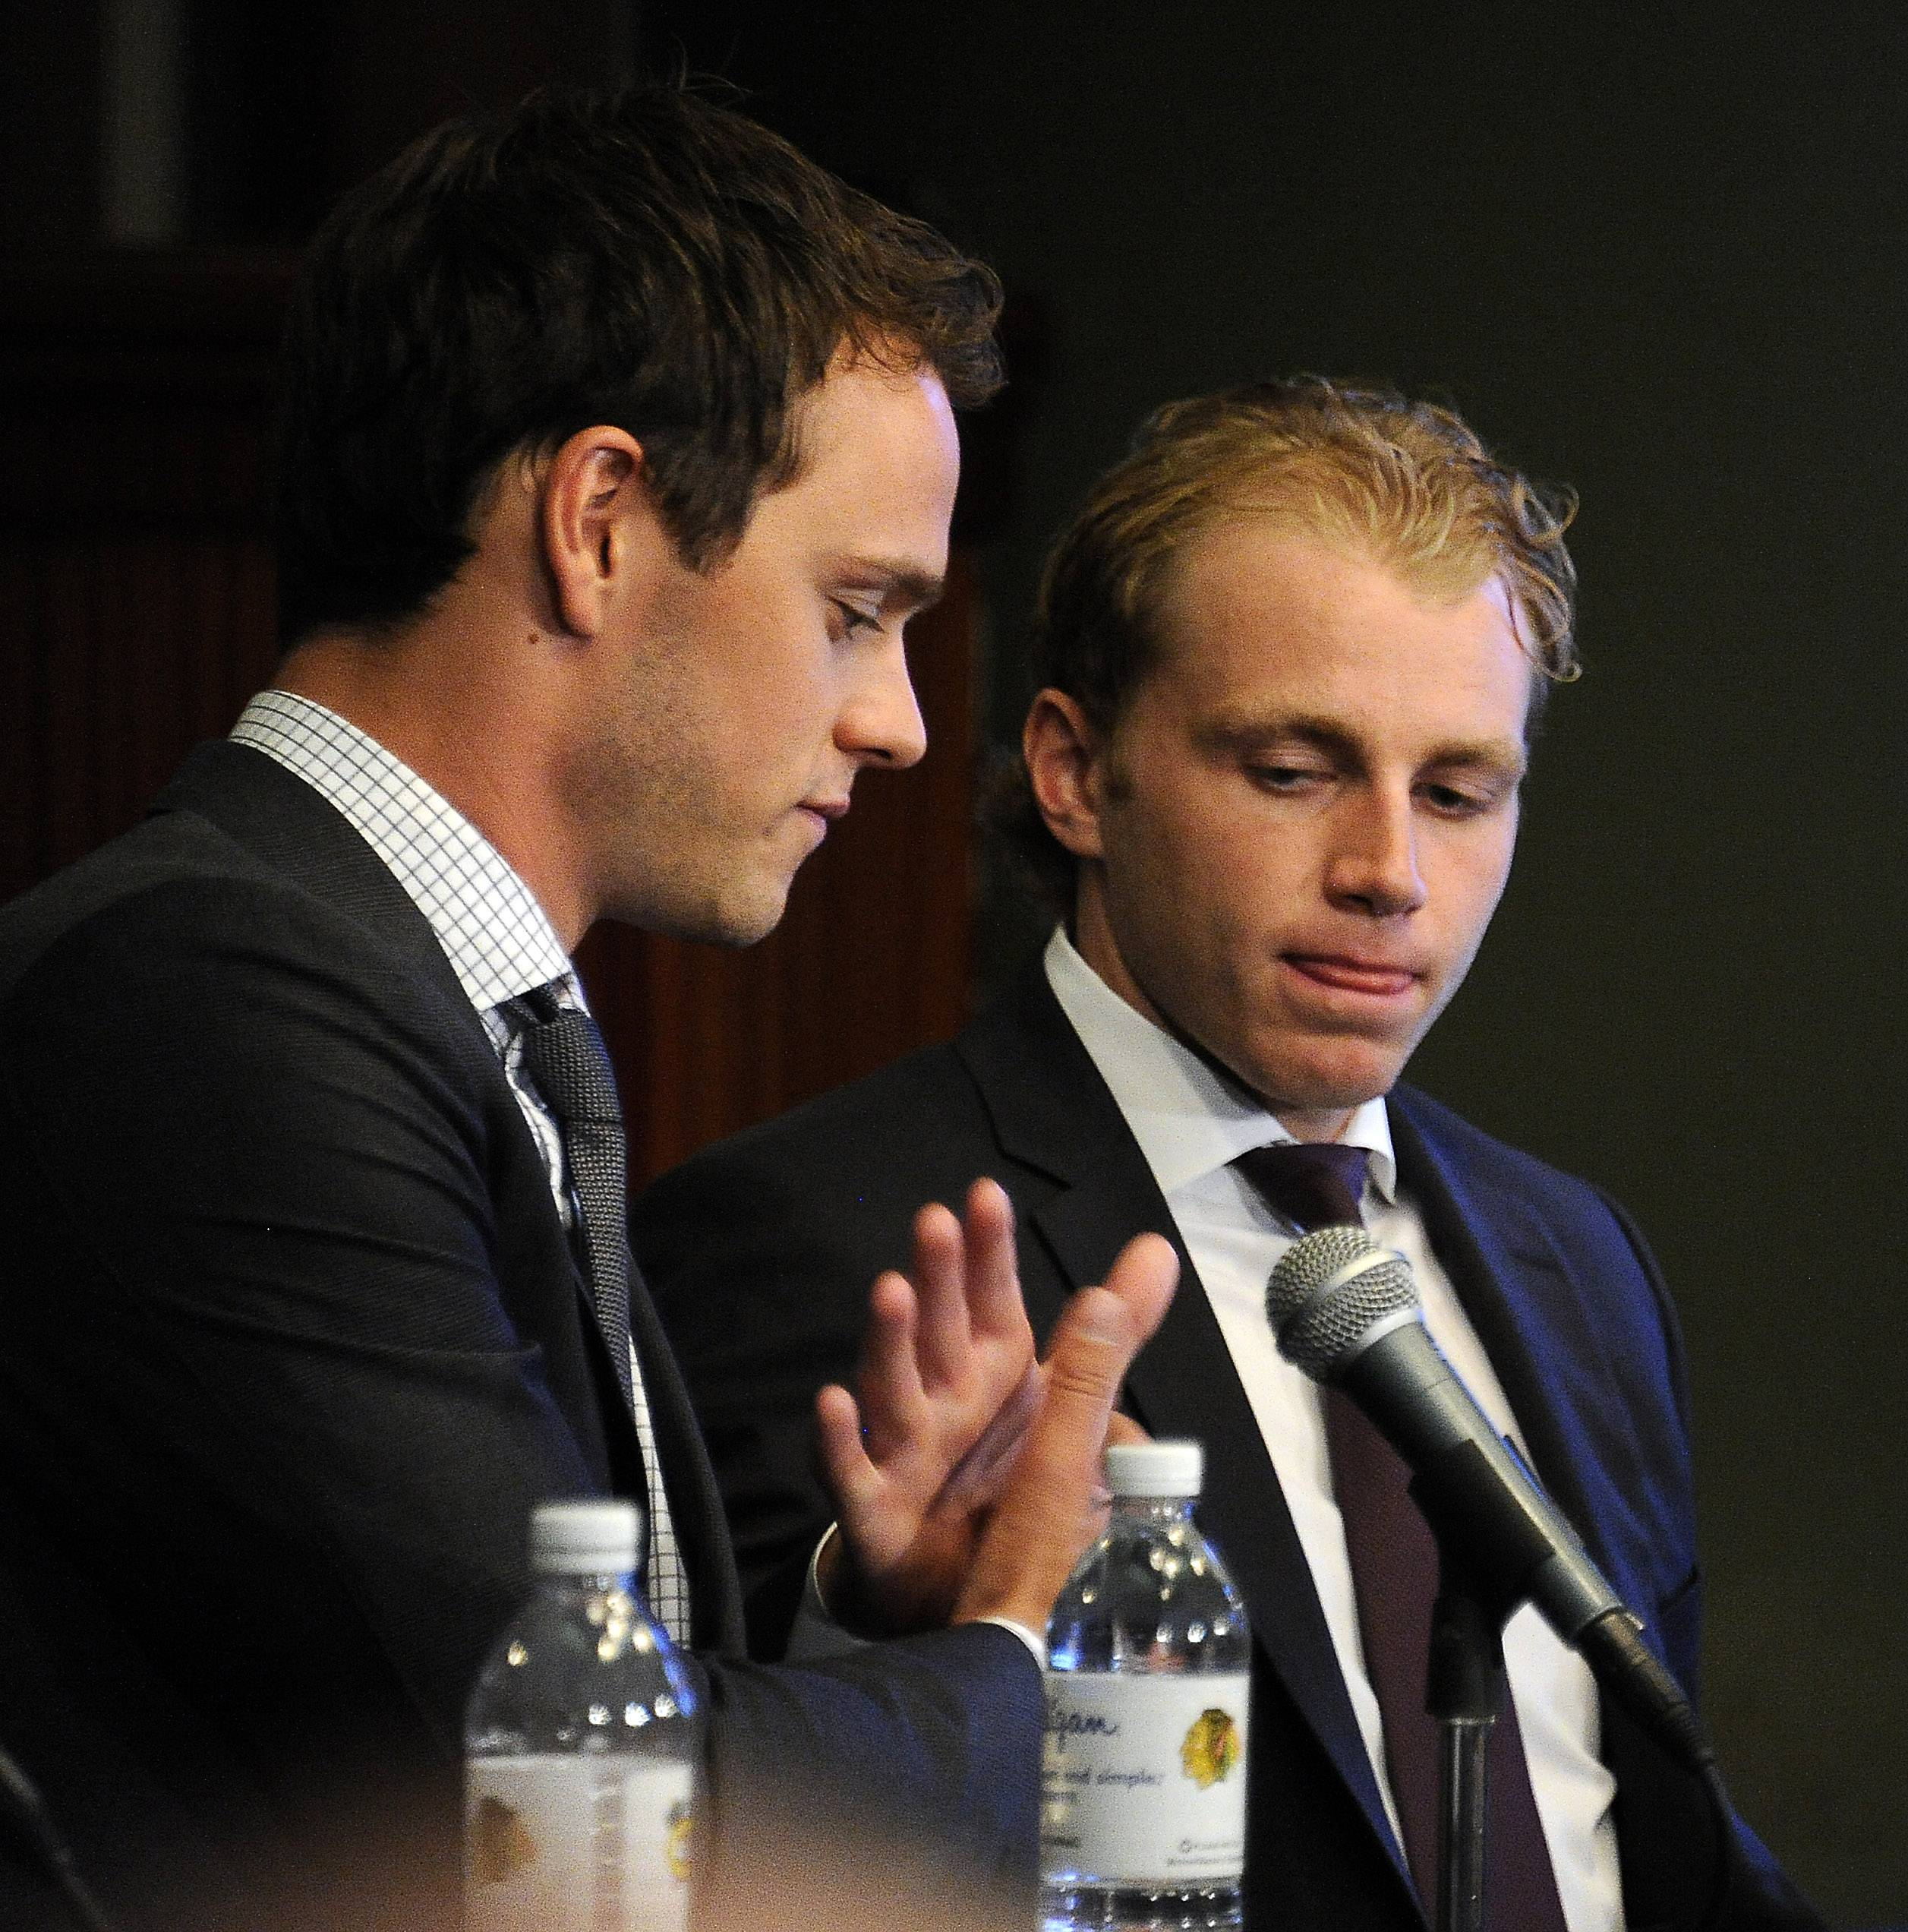 Blackhawks captain Jonathan Toews, left, and Patrick Kane shake hands after talking at their news conference Wednesday at the United Center. The iconic pair recently agreed to identical eight-year contract extensions.